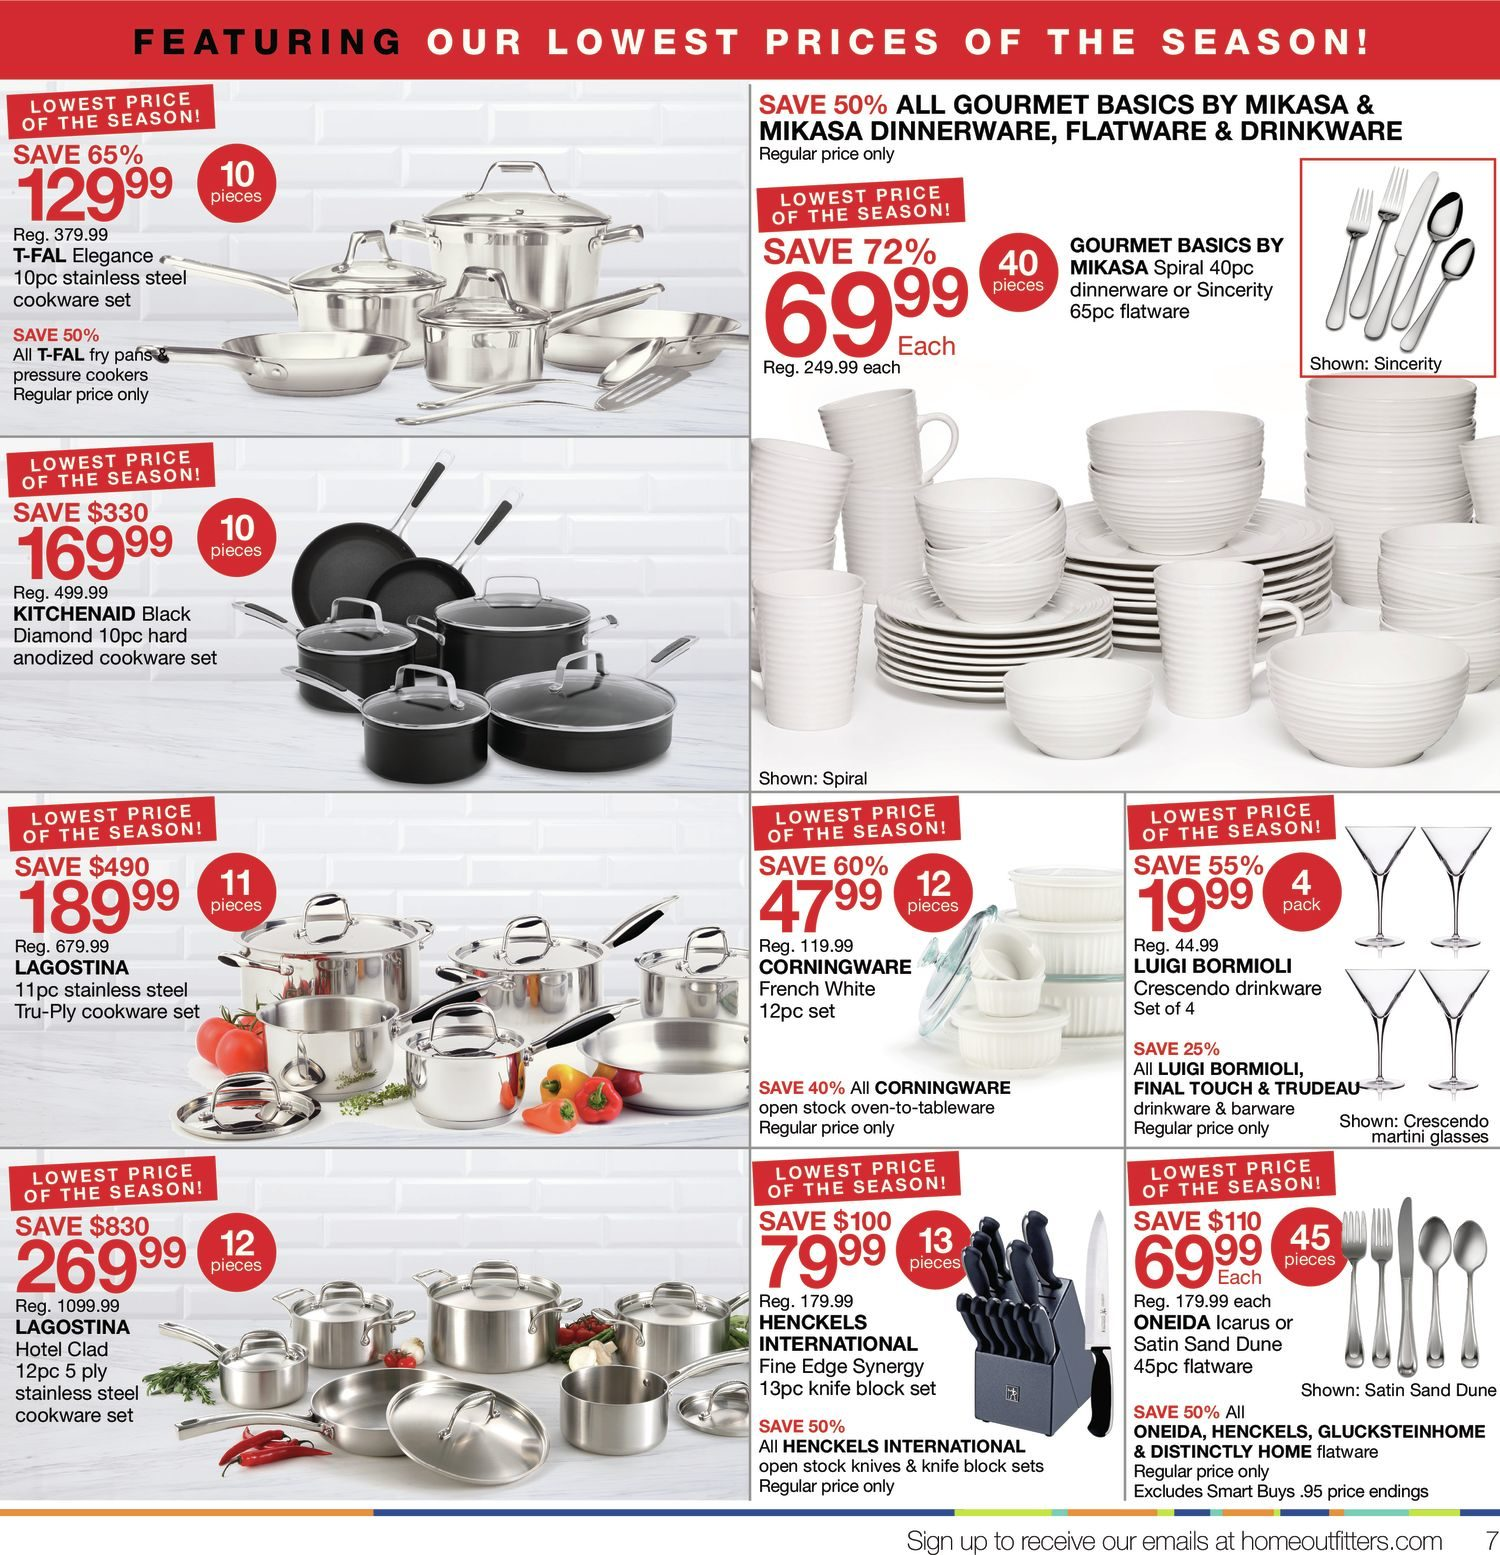 Home Outfitters Weekly Flyer - Weekly - We Love Home Days! - May 19 \u2013 25 - RedFlagDeals.com  sc 1 st  RedFlagDeals.com & Home Outfitters Weekly Flyer - Weekly - We Love Home Days! - May 19 ...